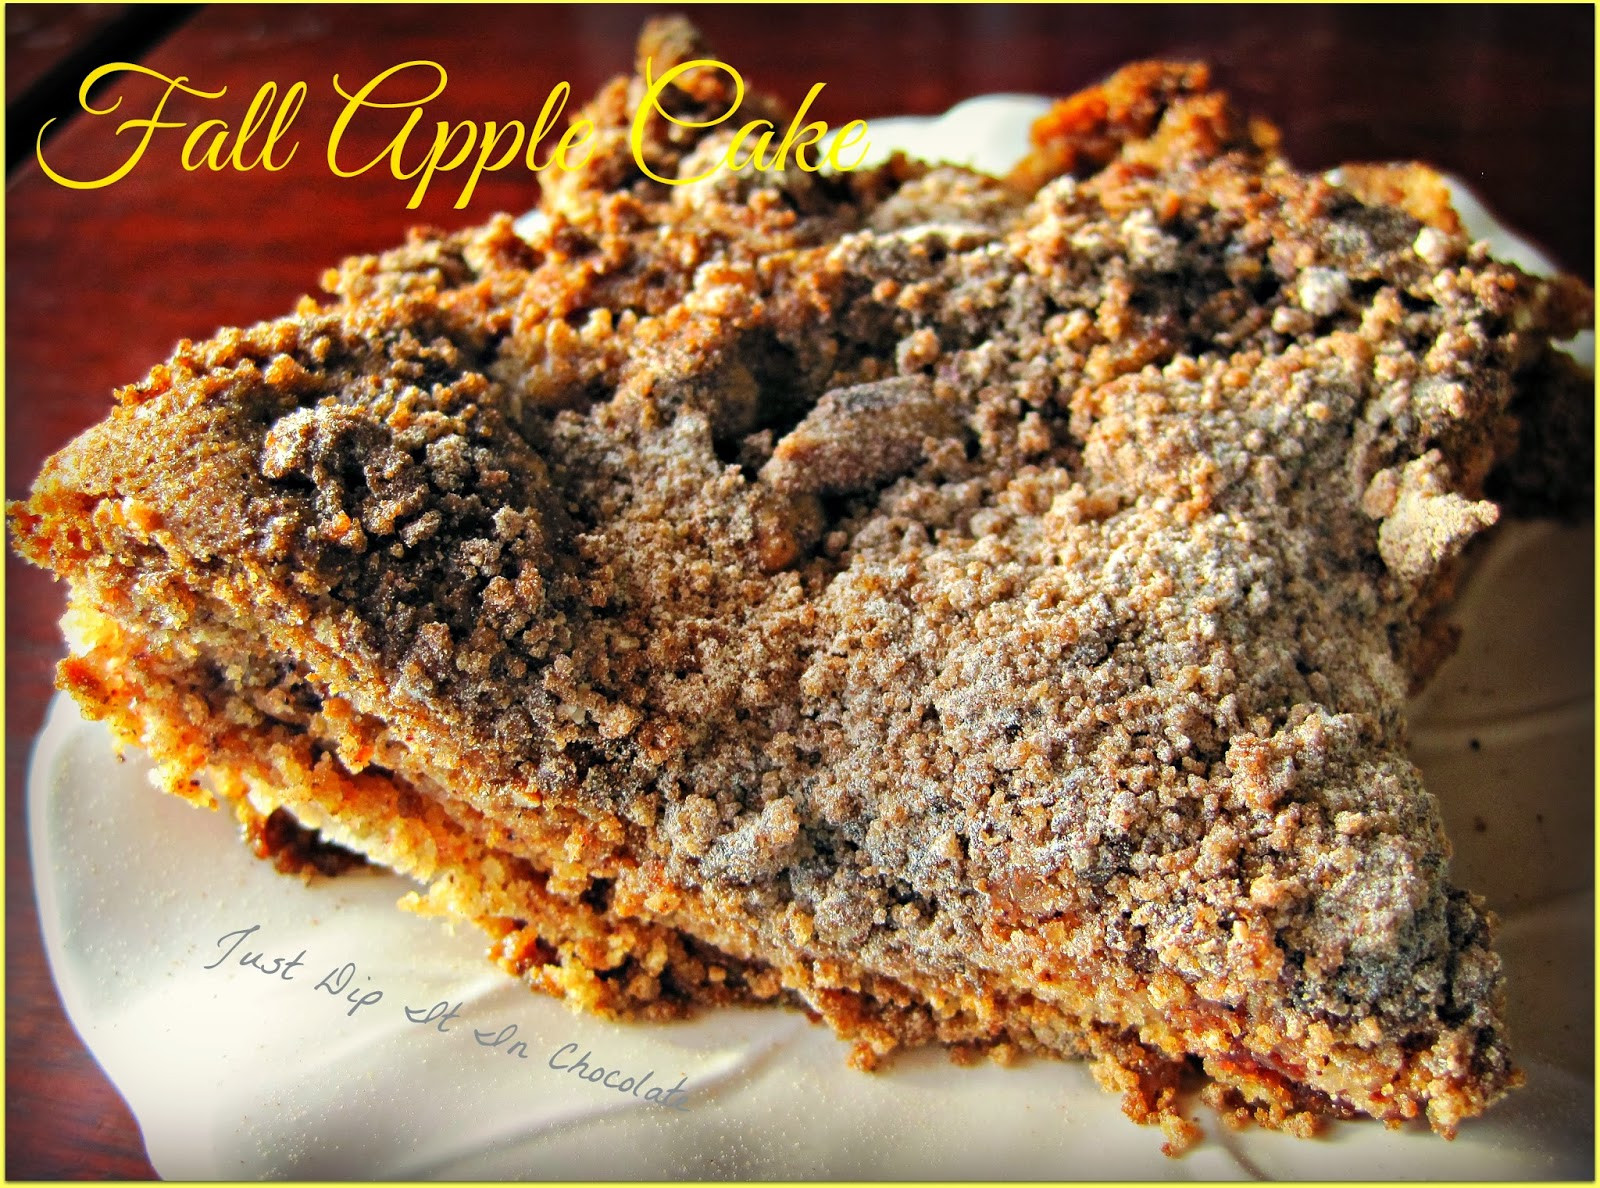 Fall Cake Recipes  Just Dip It In Chocolate Fall Apple Cake Recipe